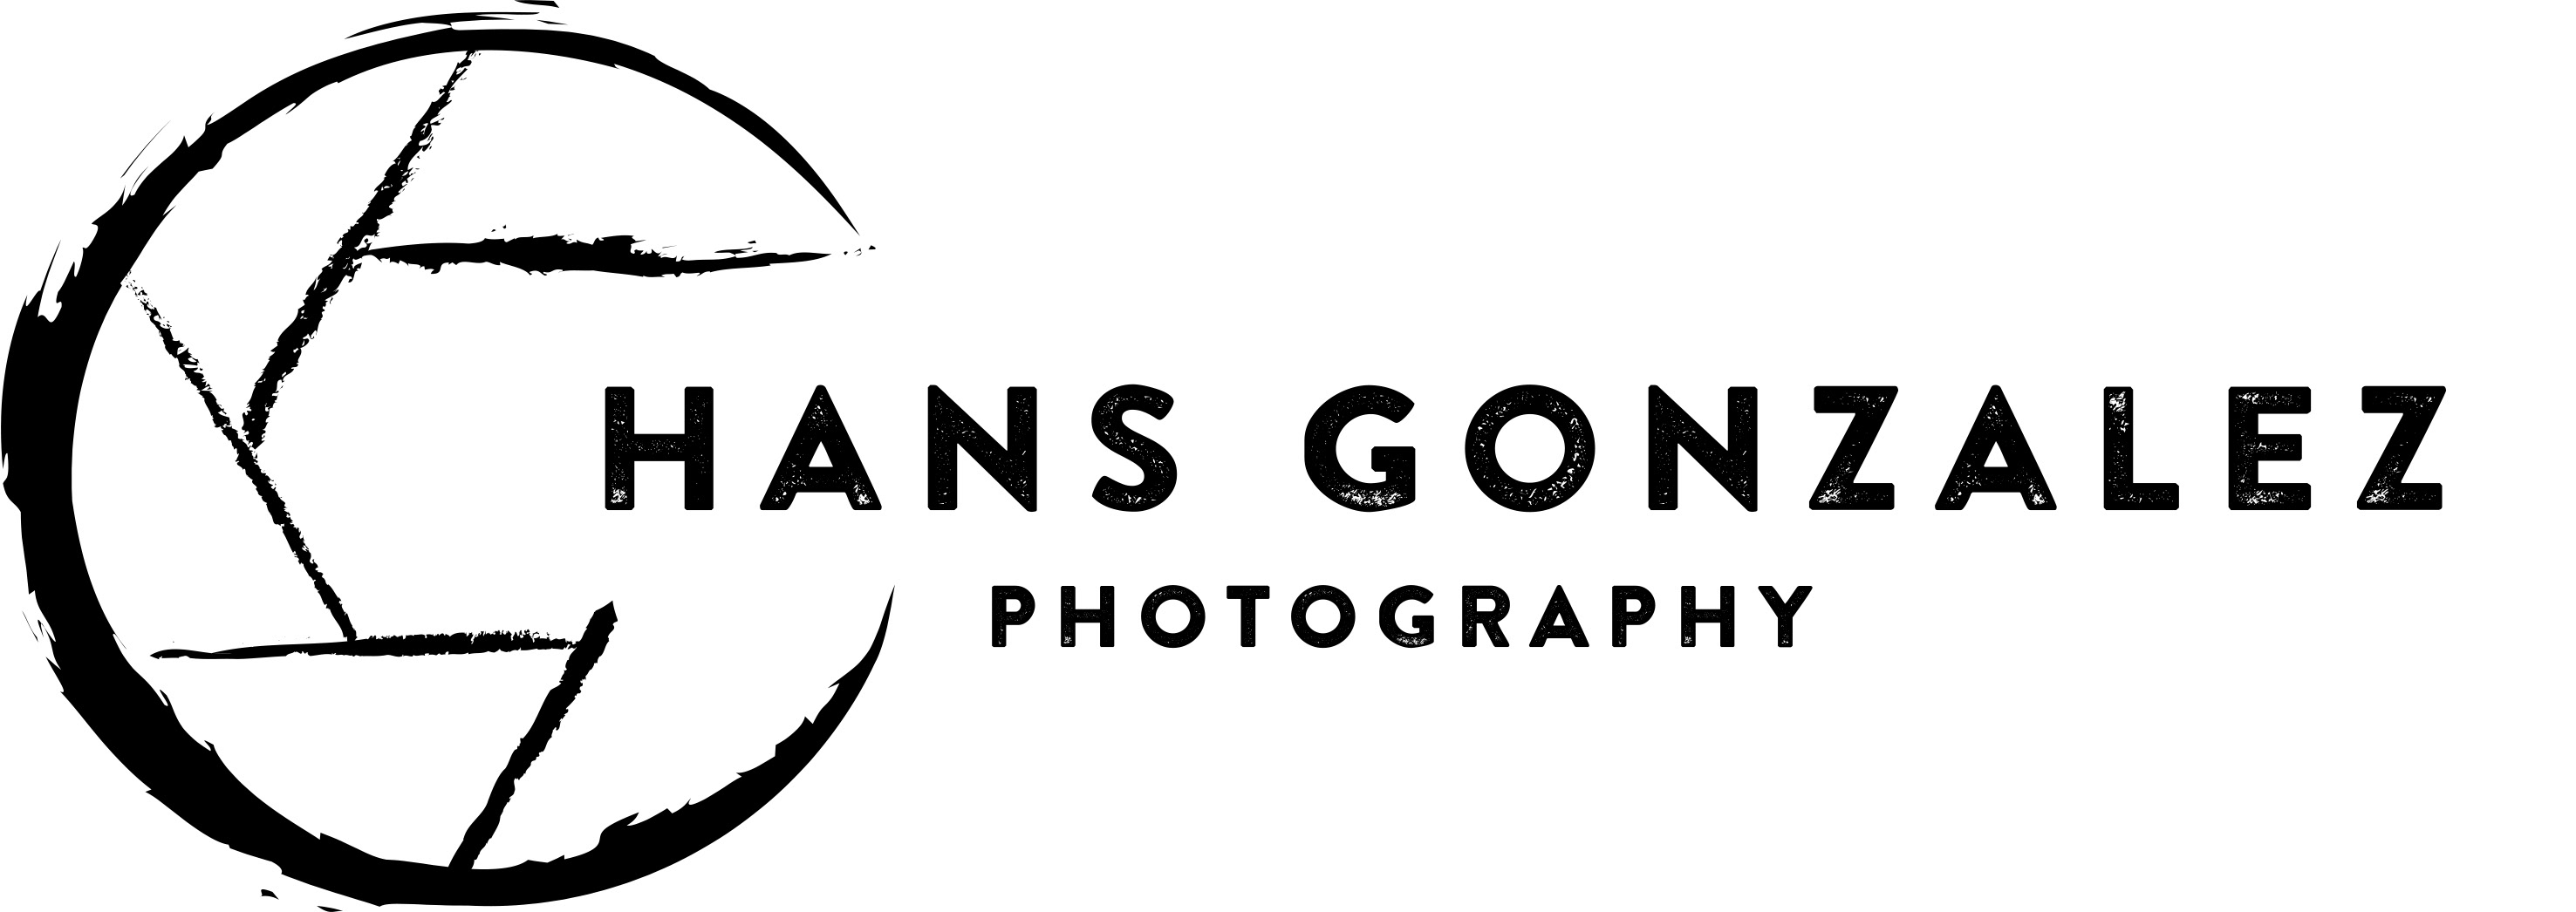 Hans Gonzalez Photography